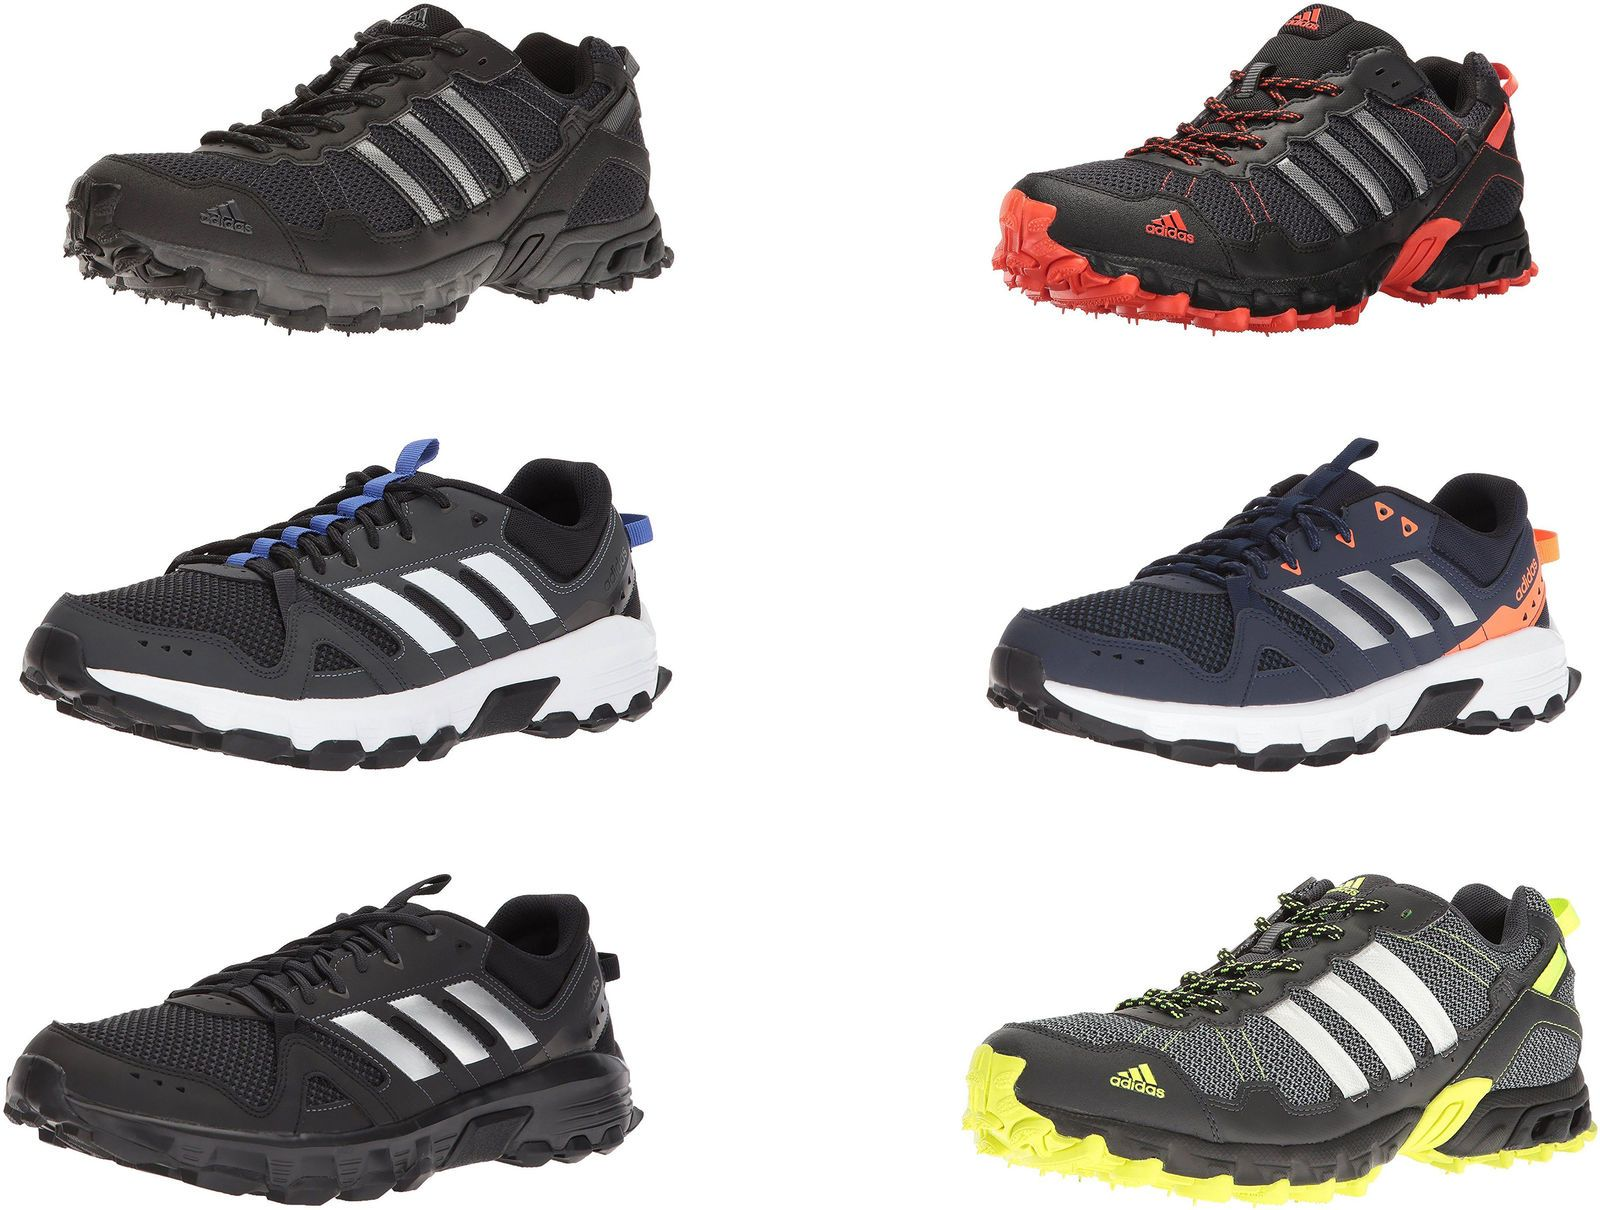 adidas Men's Rockadia Trail Running Shoes 6 Colors